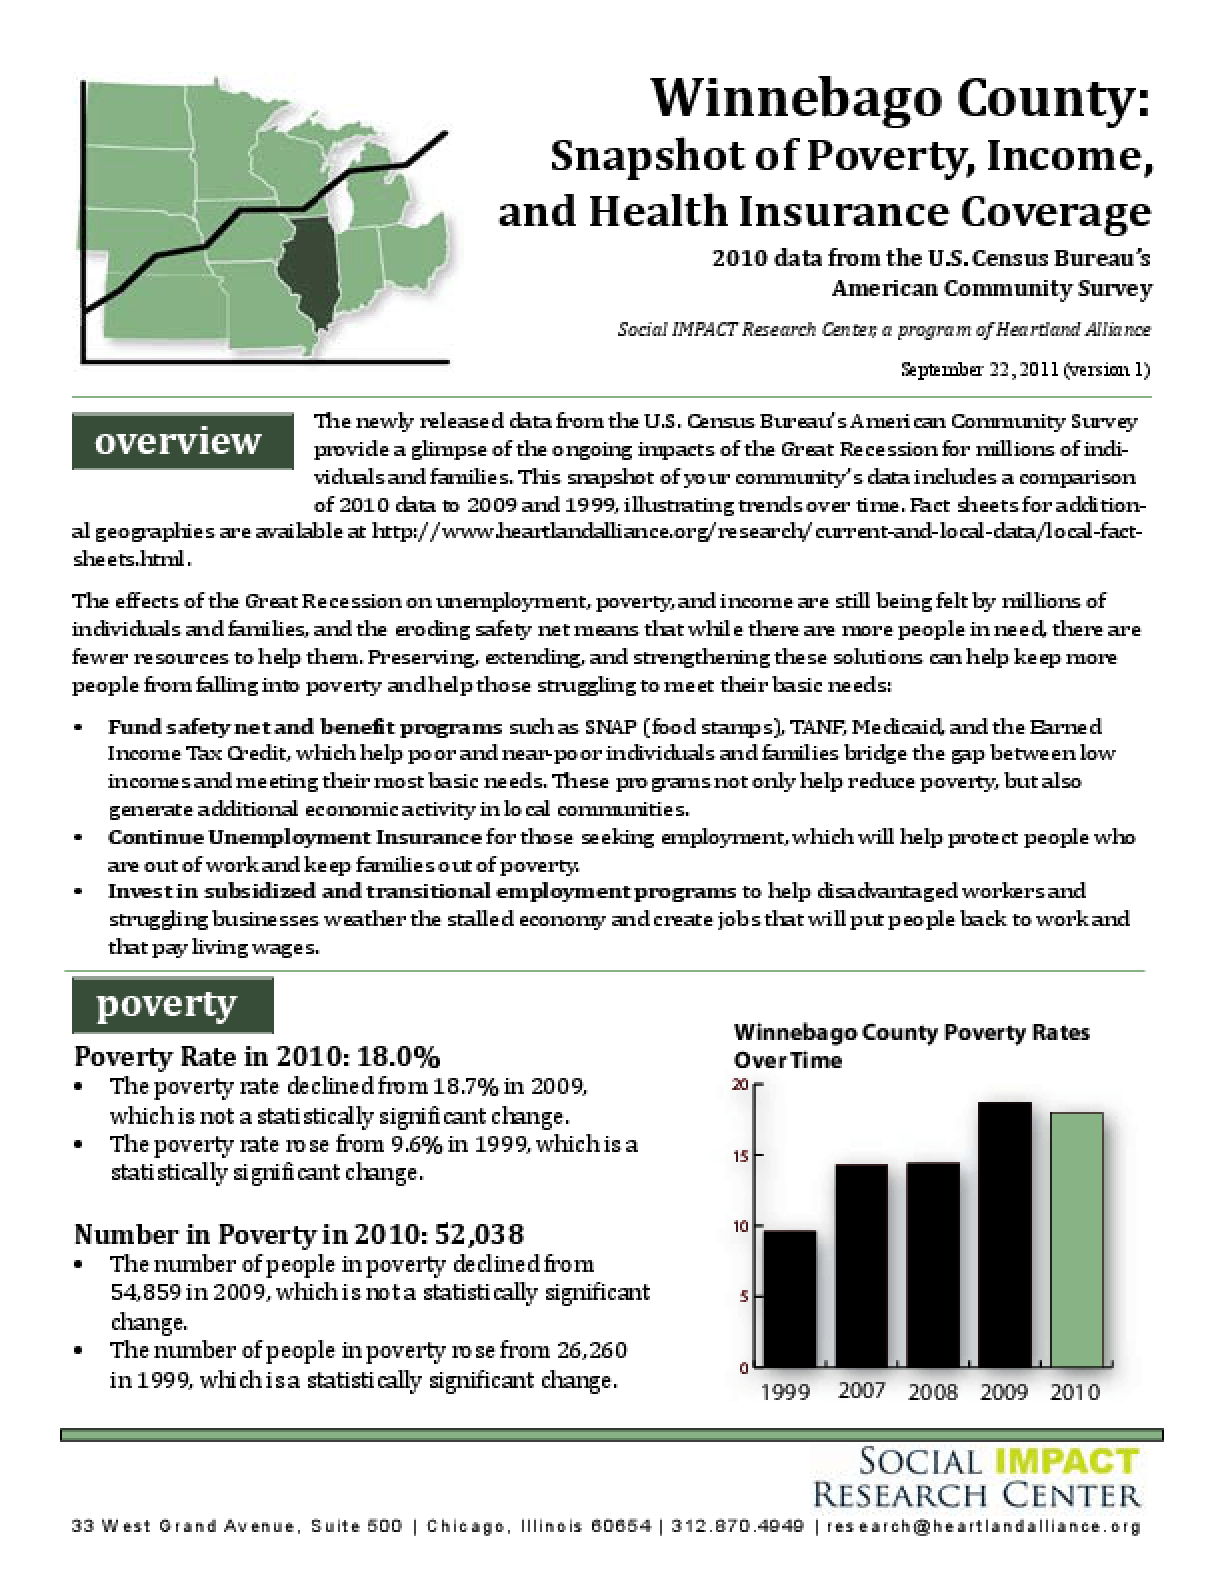 Winnebago County: Snapshot of Poverty, Income, and Health Insurance Coverage